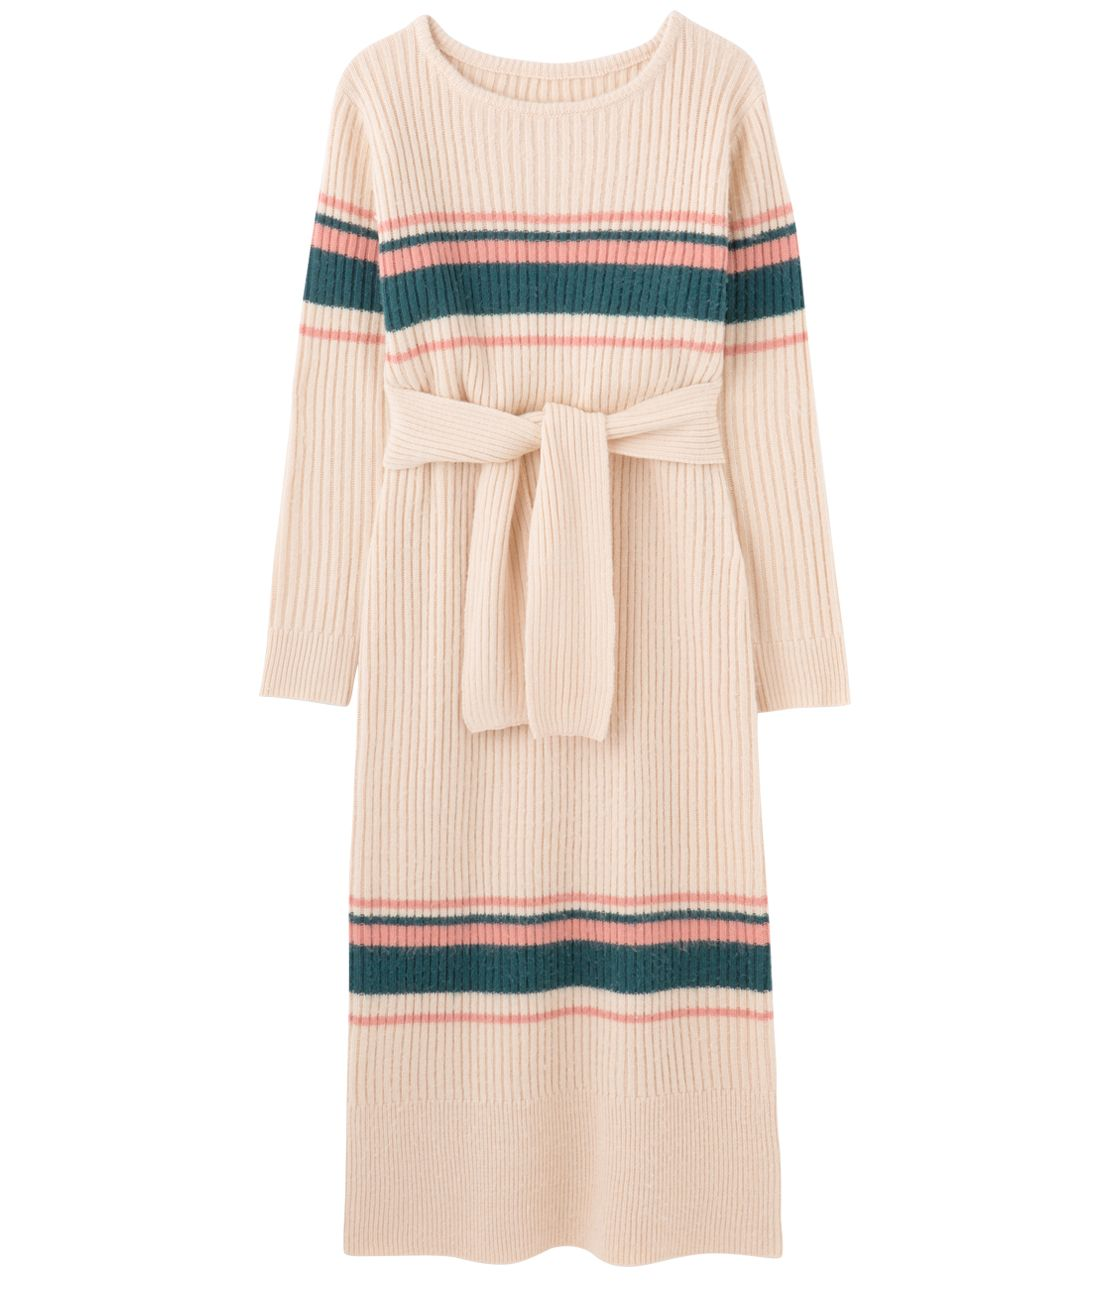 Comfortable all-day border knit dress